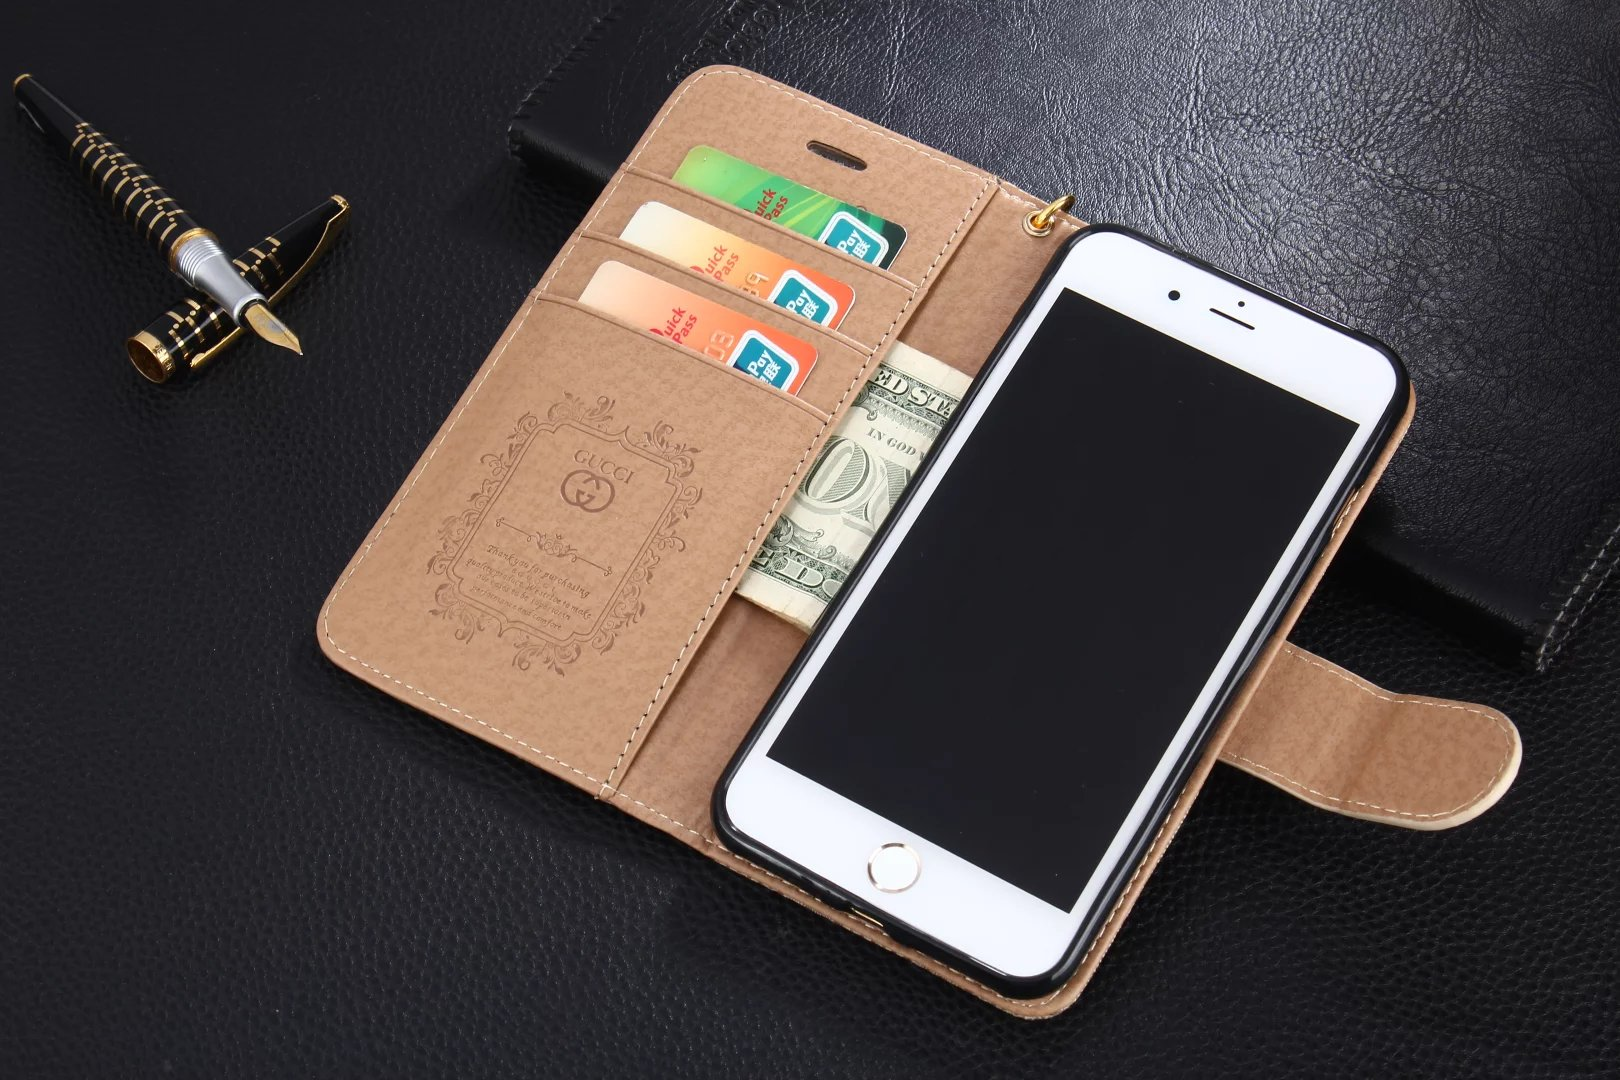 iphone 8 case best iphone 8 cover Louis Vuitton iphone 8 case mophie juice pack phone cover iphone 8 customize your iphone 8 case mens designer iphone 8 cases juice pack plus phone covers for 8